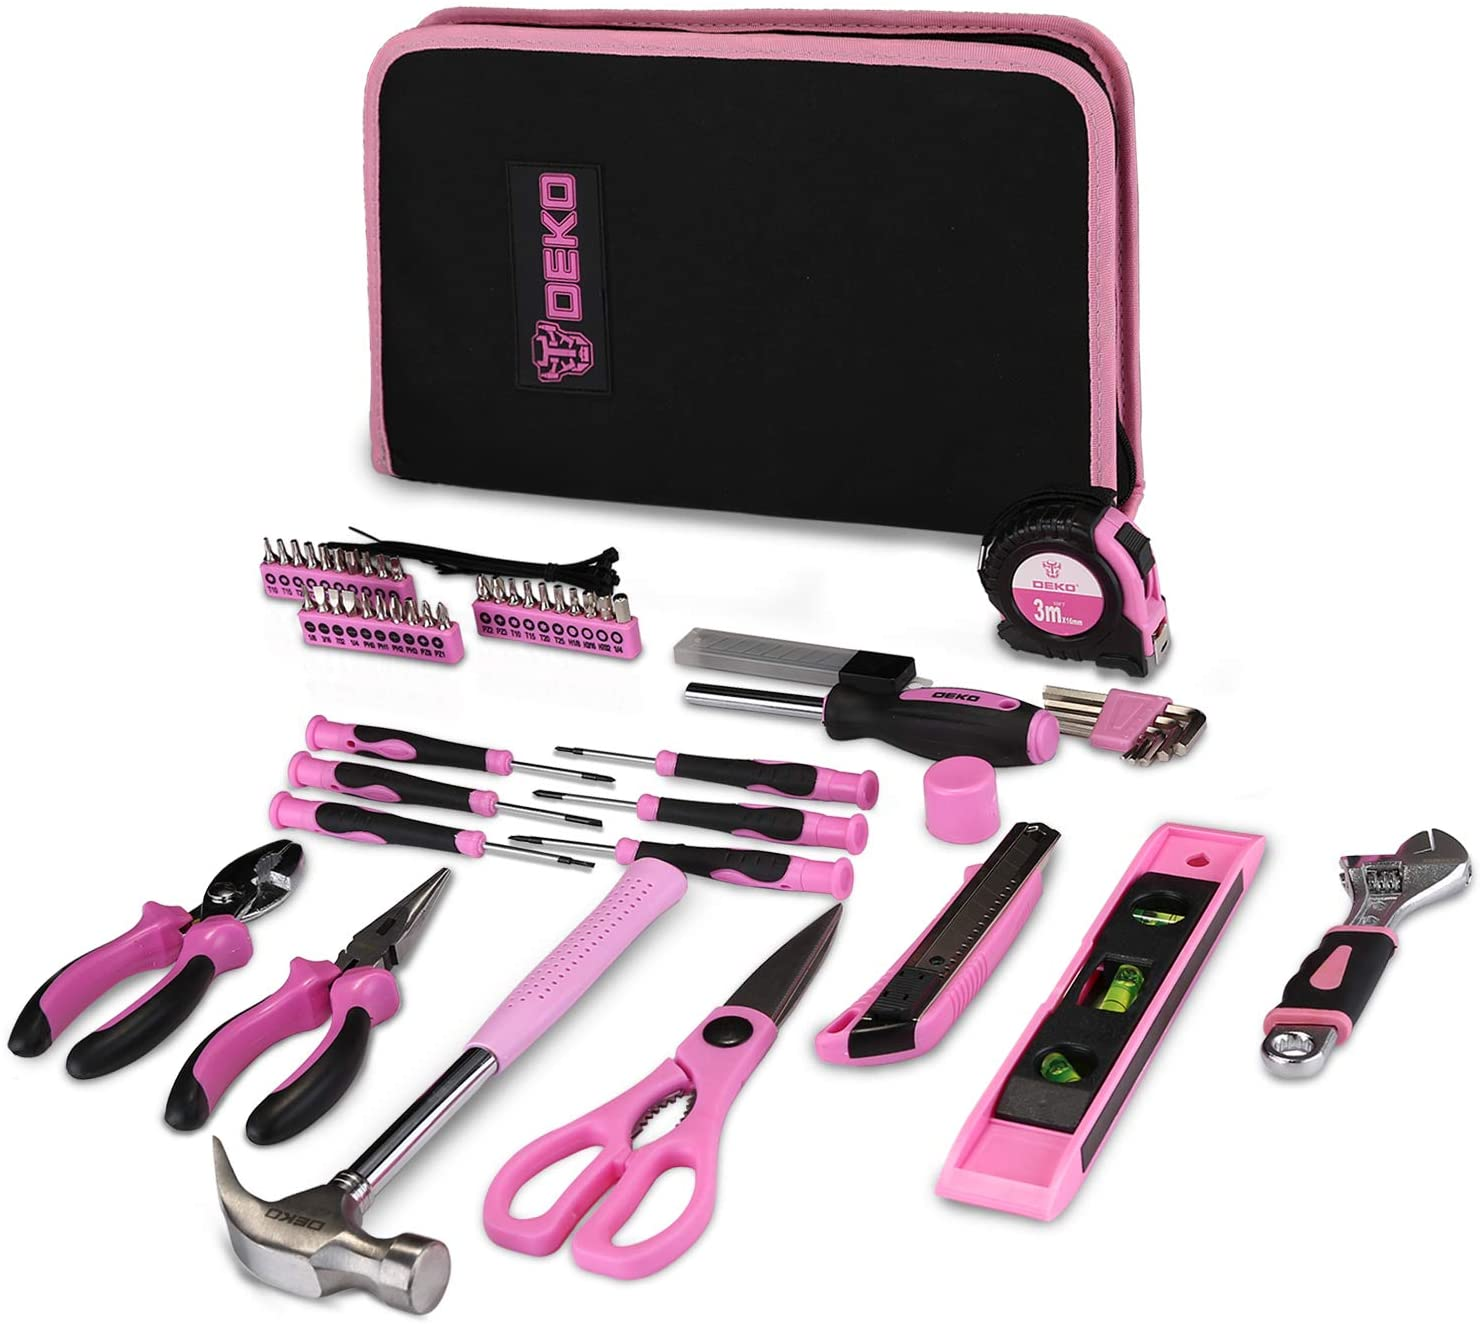 DEKO Pink 71 Piece Household Tool Kit,Ladies Portable Tool Set with Easy Carrying Pouch, Perfect for DIY Projects, Home Maintenance